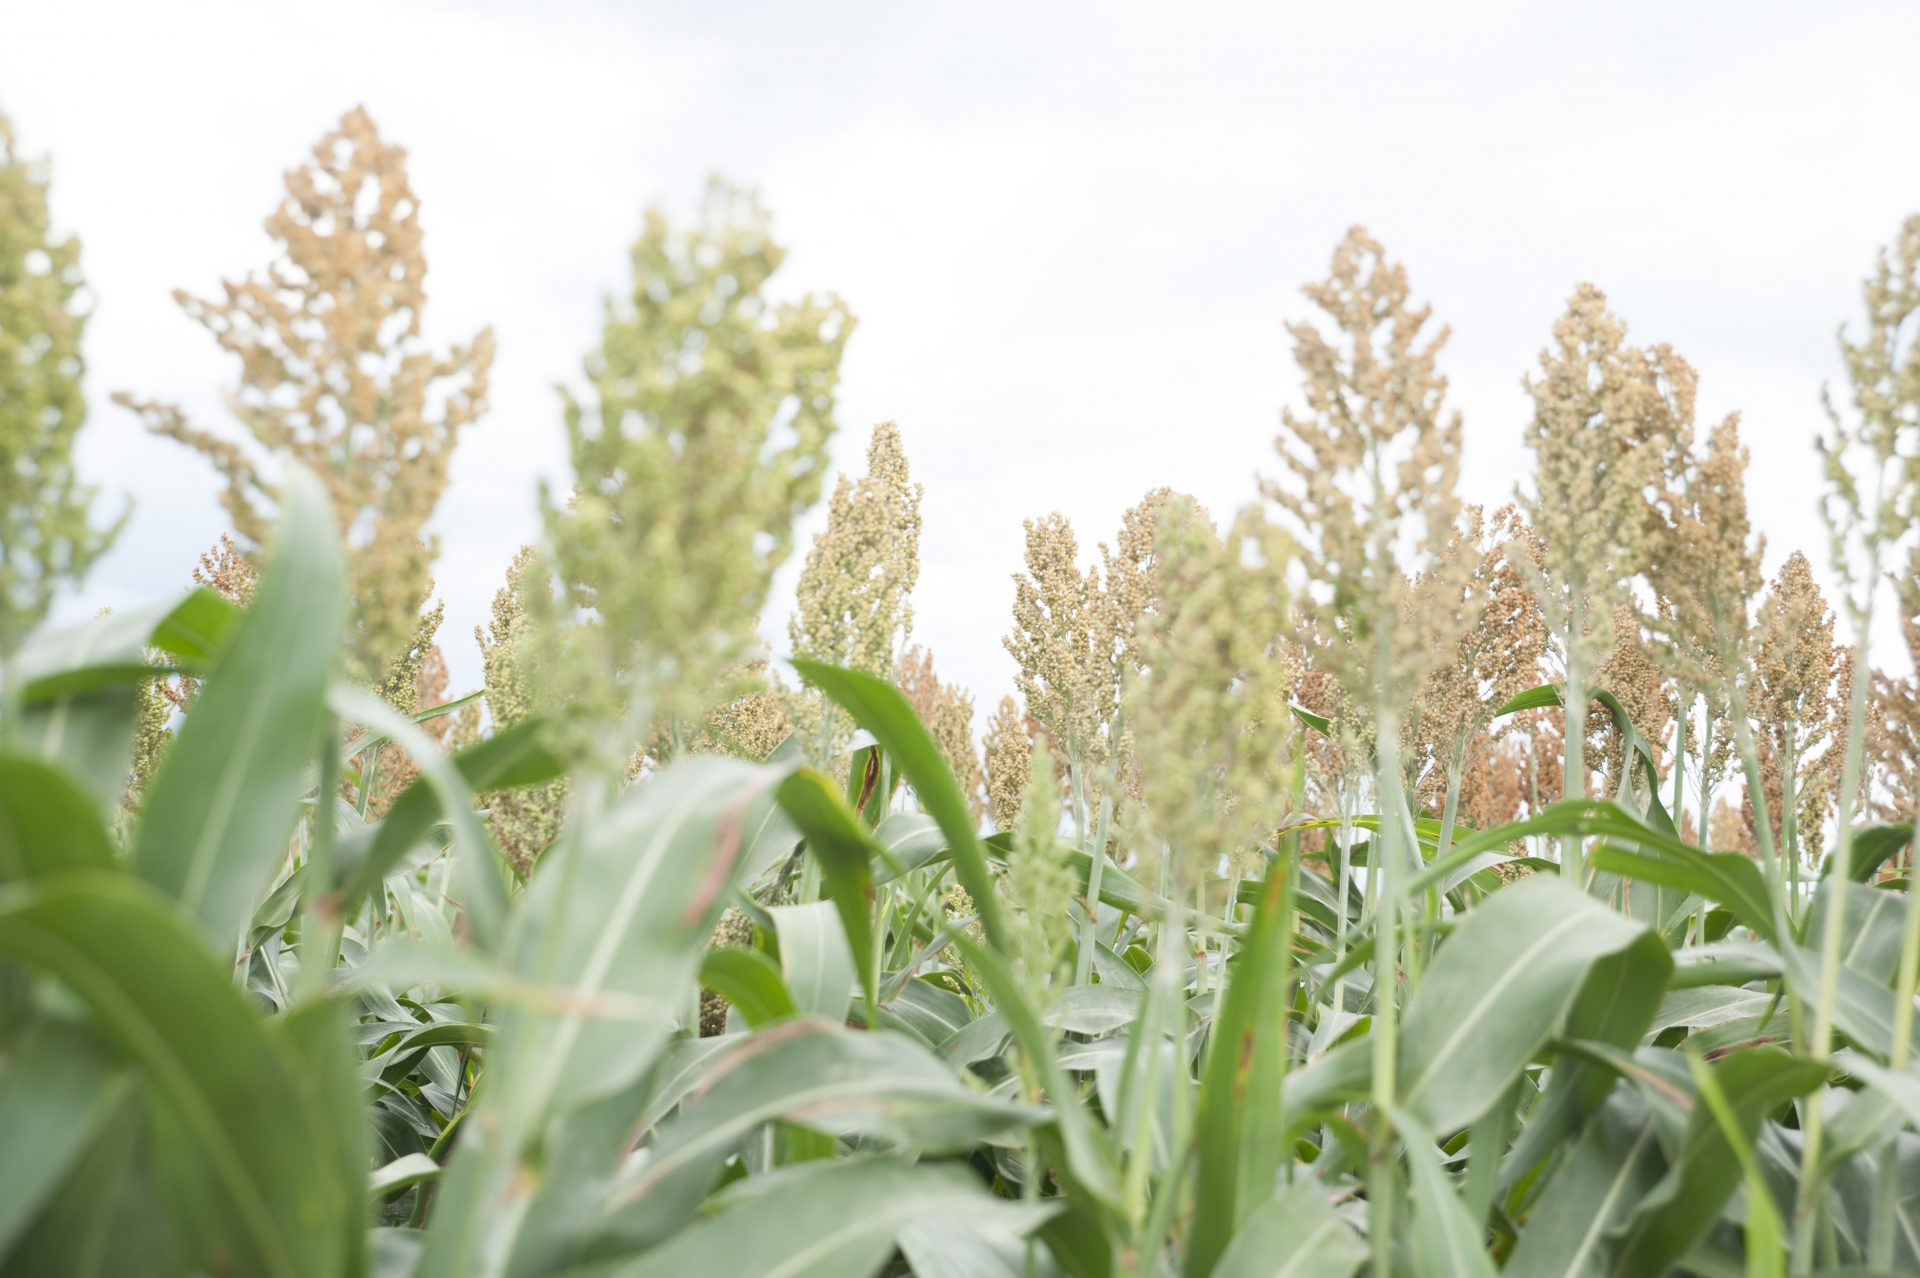 Millet plants. Lone Star Ag Credit is a source for farm and ranch loans.